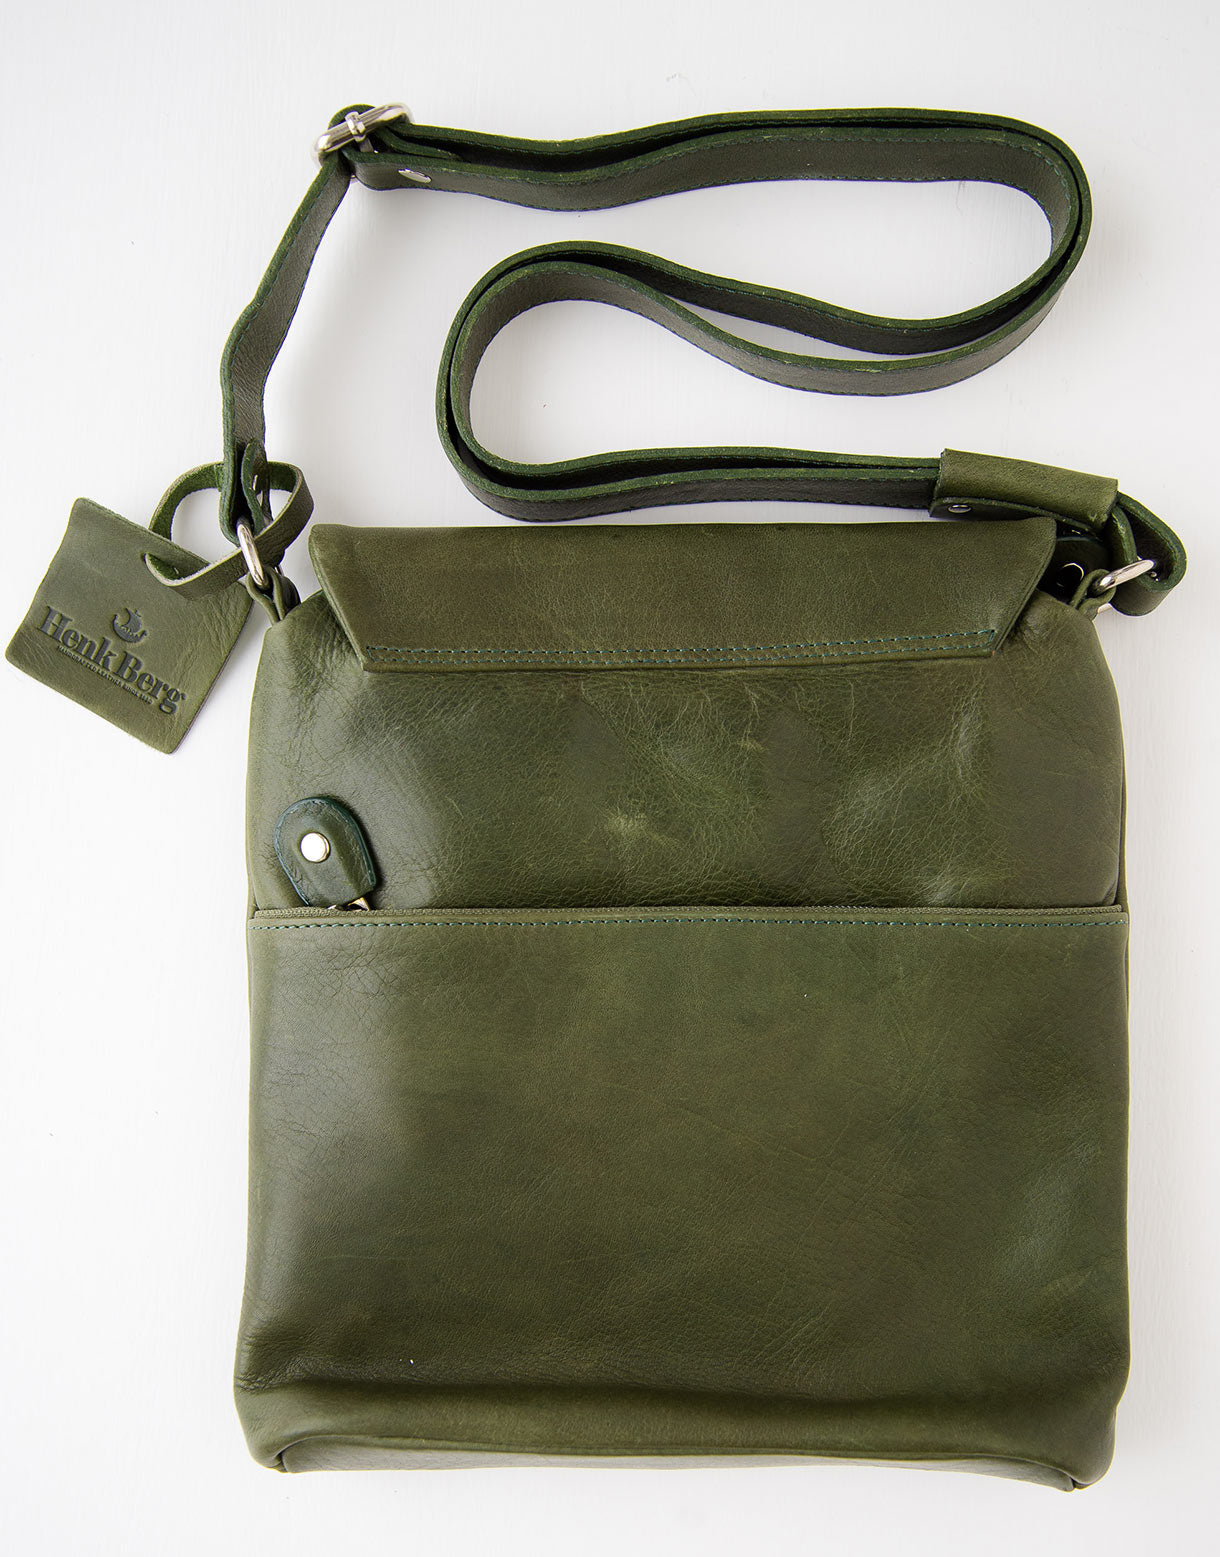 Kit Leather Bag in Green